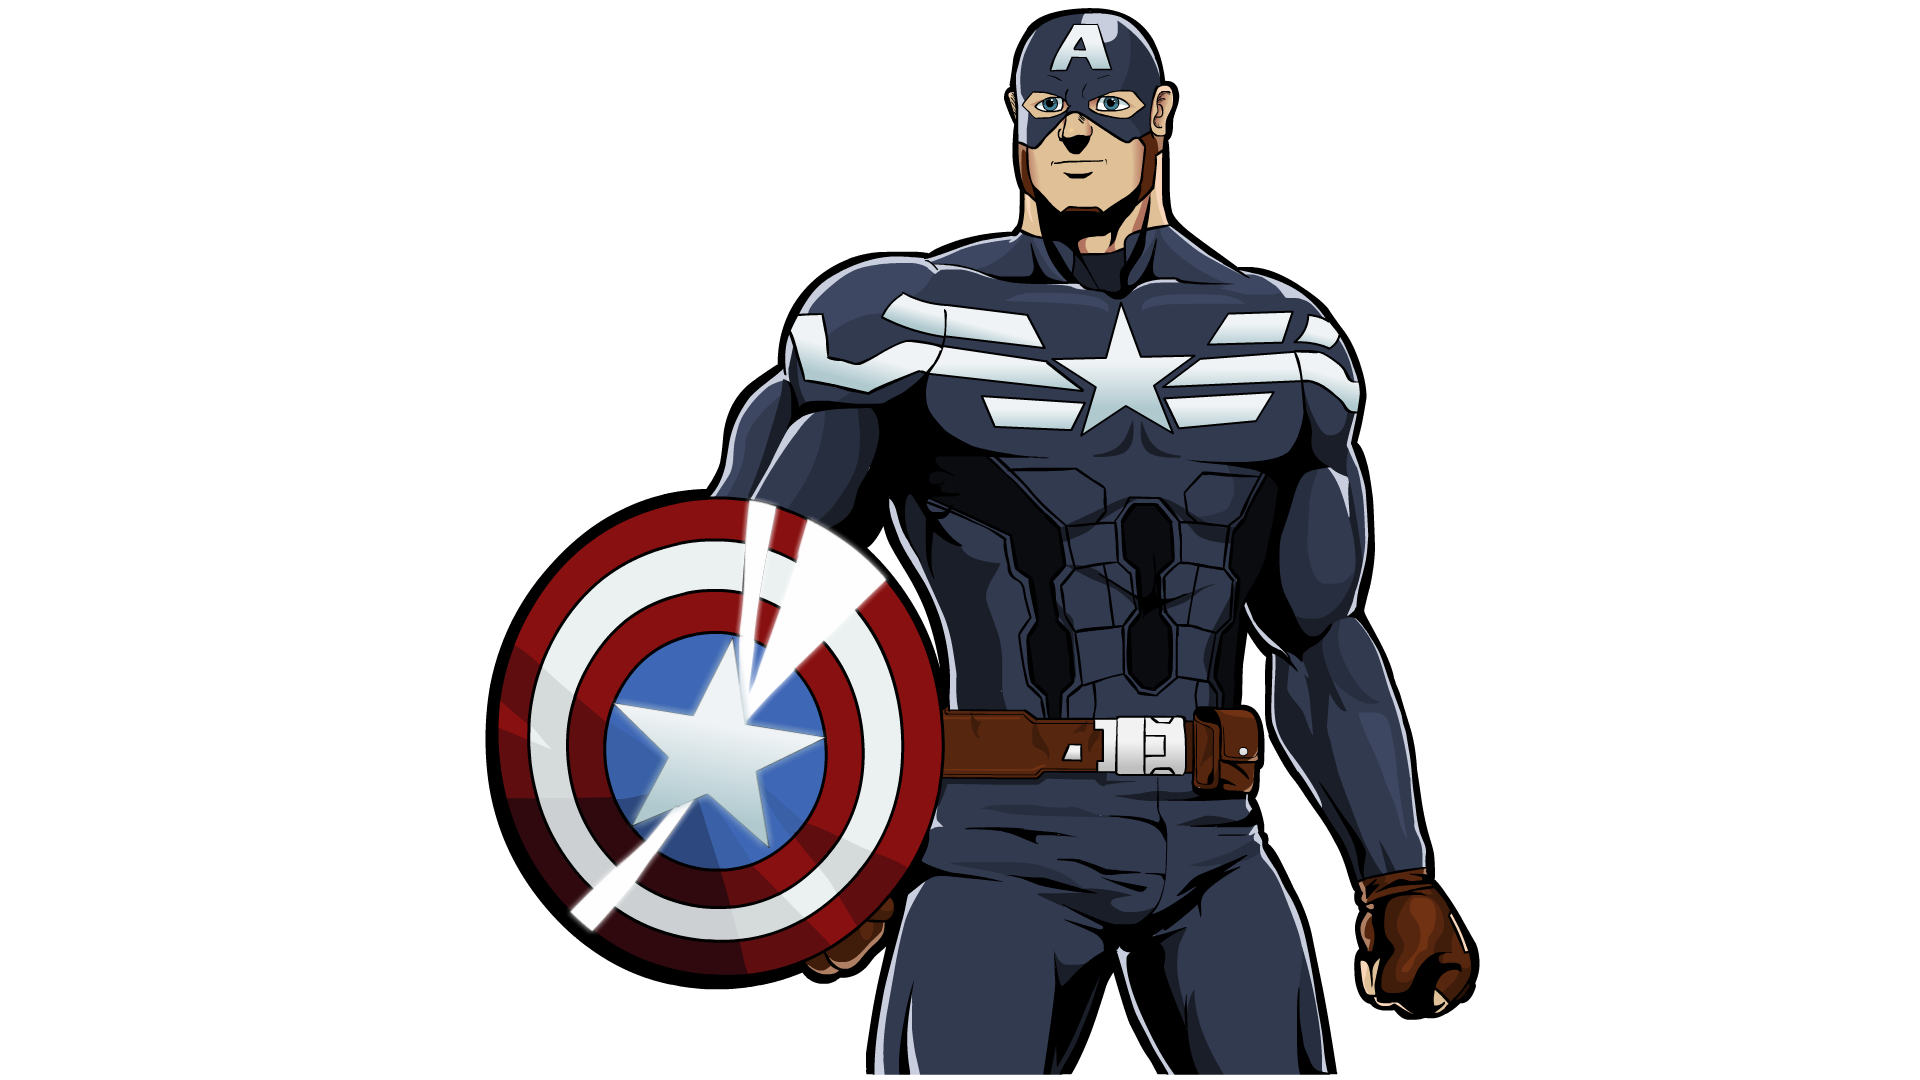 Captain america winter soldier png. By theiyoume on newgrounds